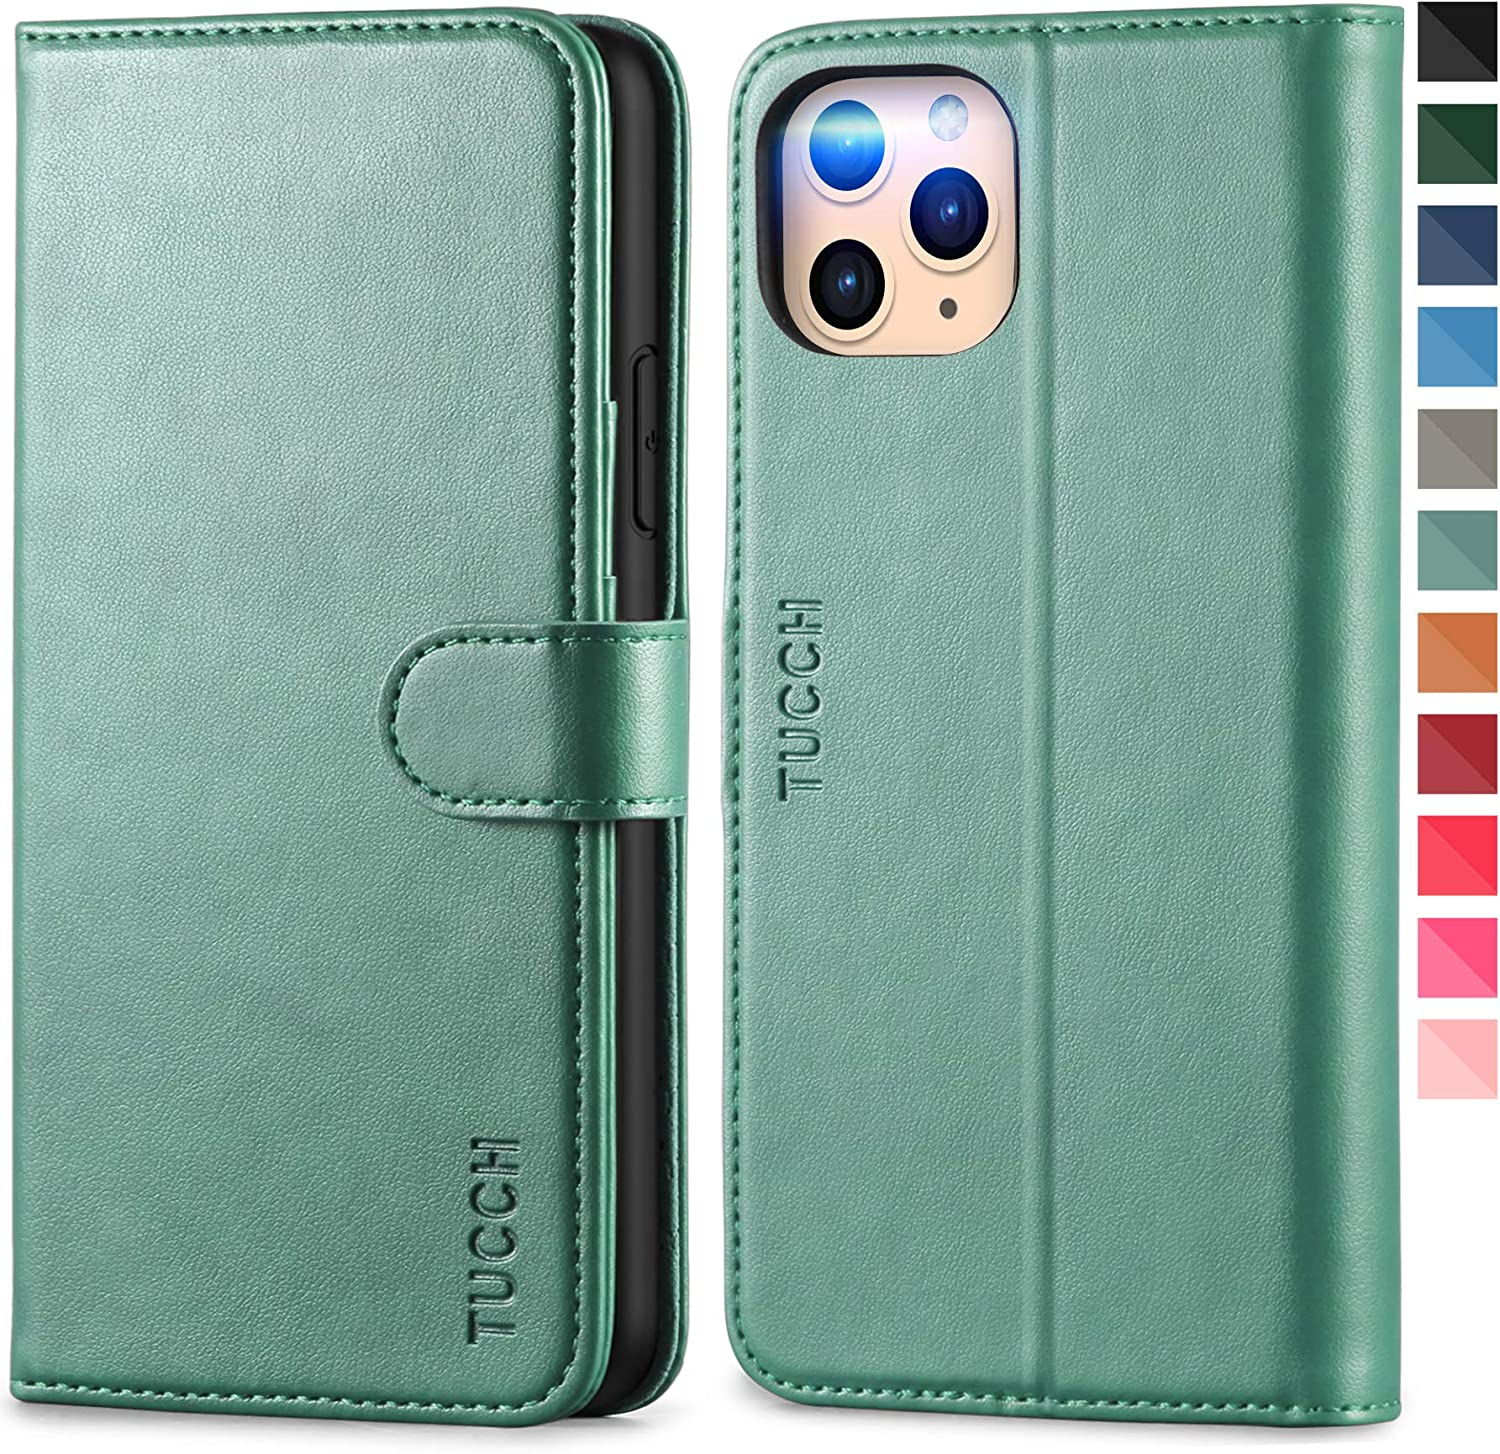 TUCCH iPhone 11 Pro Max Wallet Case, RFID Protect Card Holder Stand Magnetic PU Leather Cover with [Auto Wake Sleep] [TPU Shockproof Inner Case] Compatible with iPhone 11 Pro Max, Myrtle Green